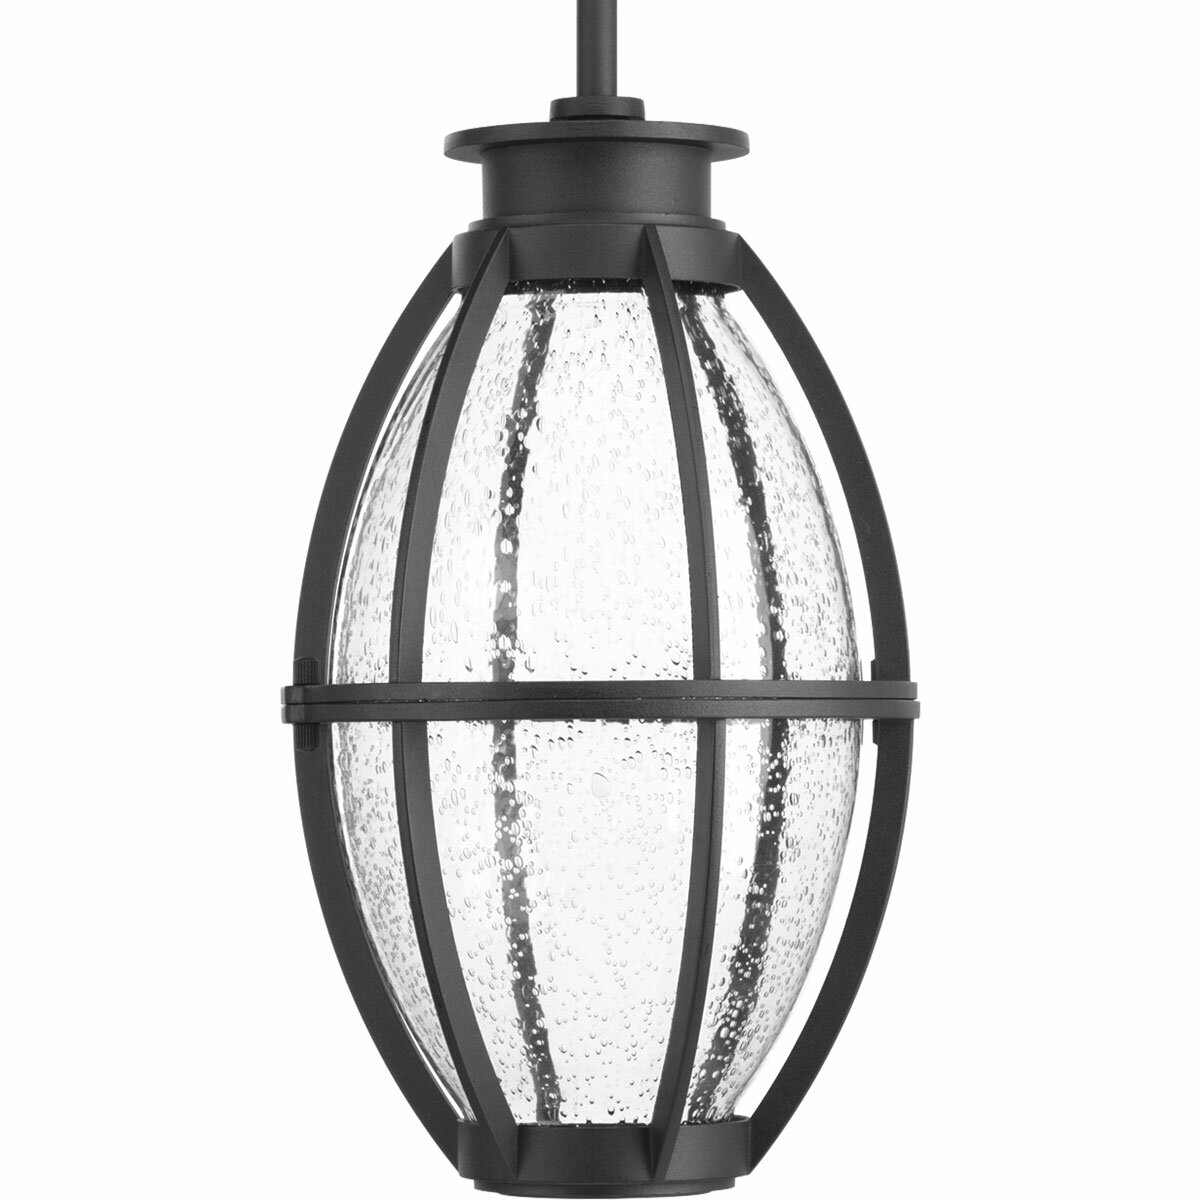 Longshore Tides Janay 1 Light Single Geometric Pendant Wayfair